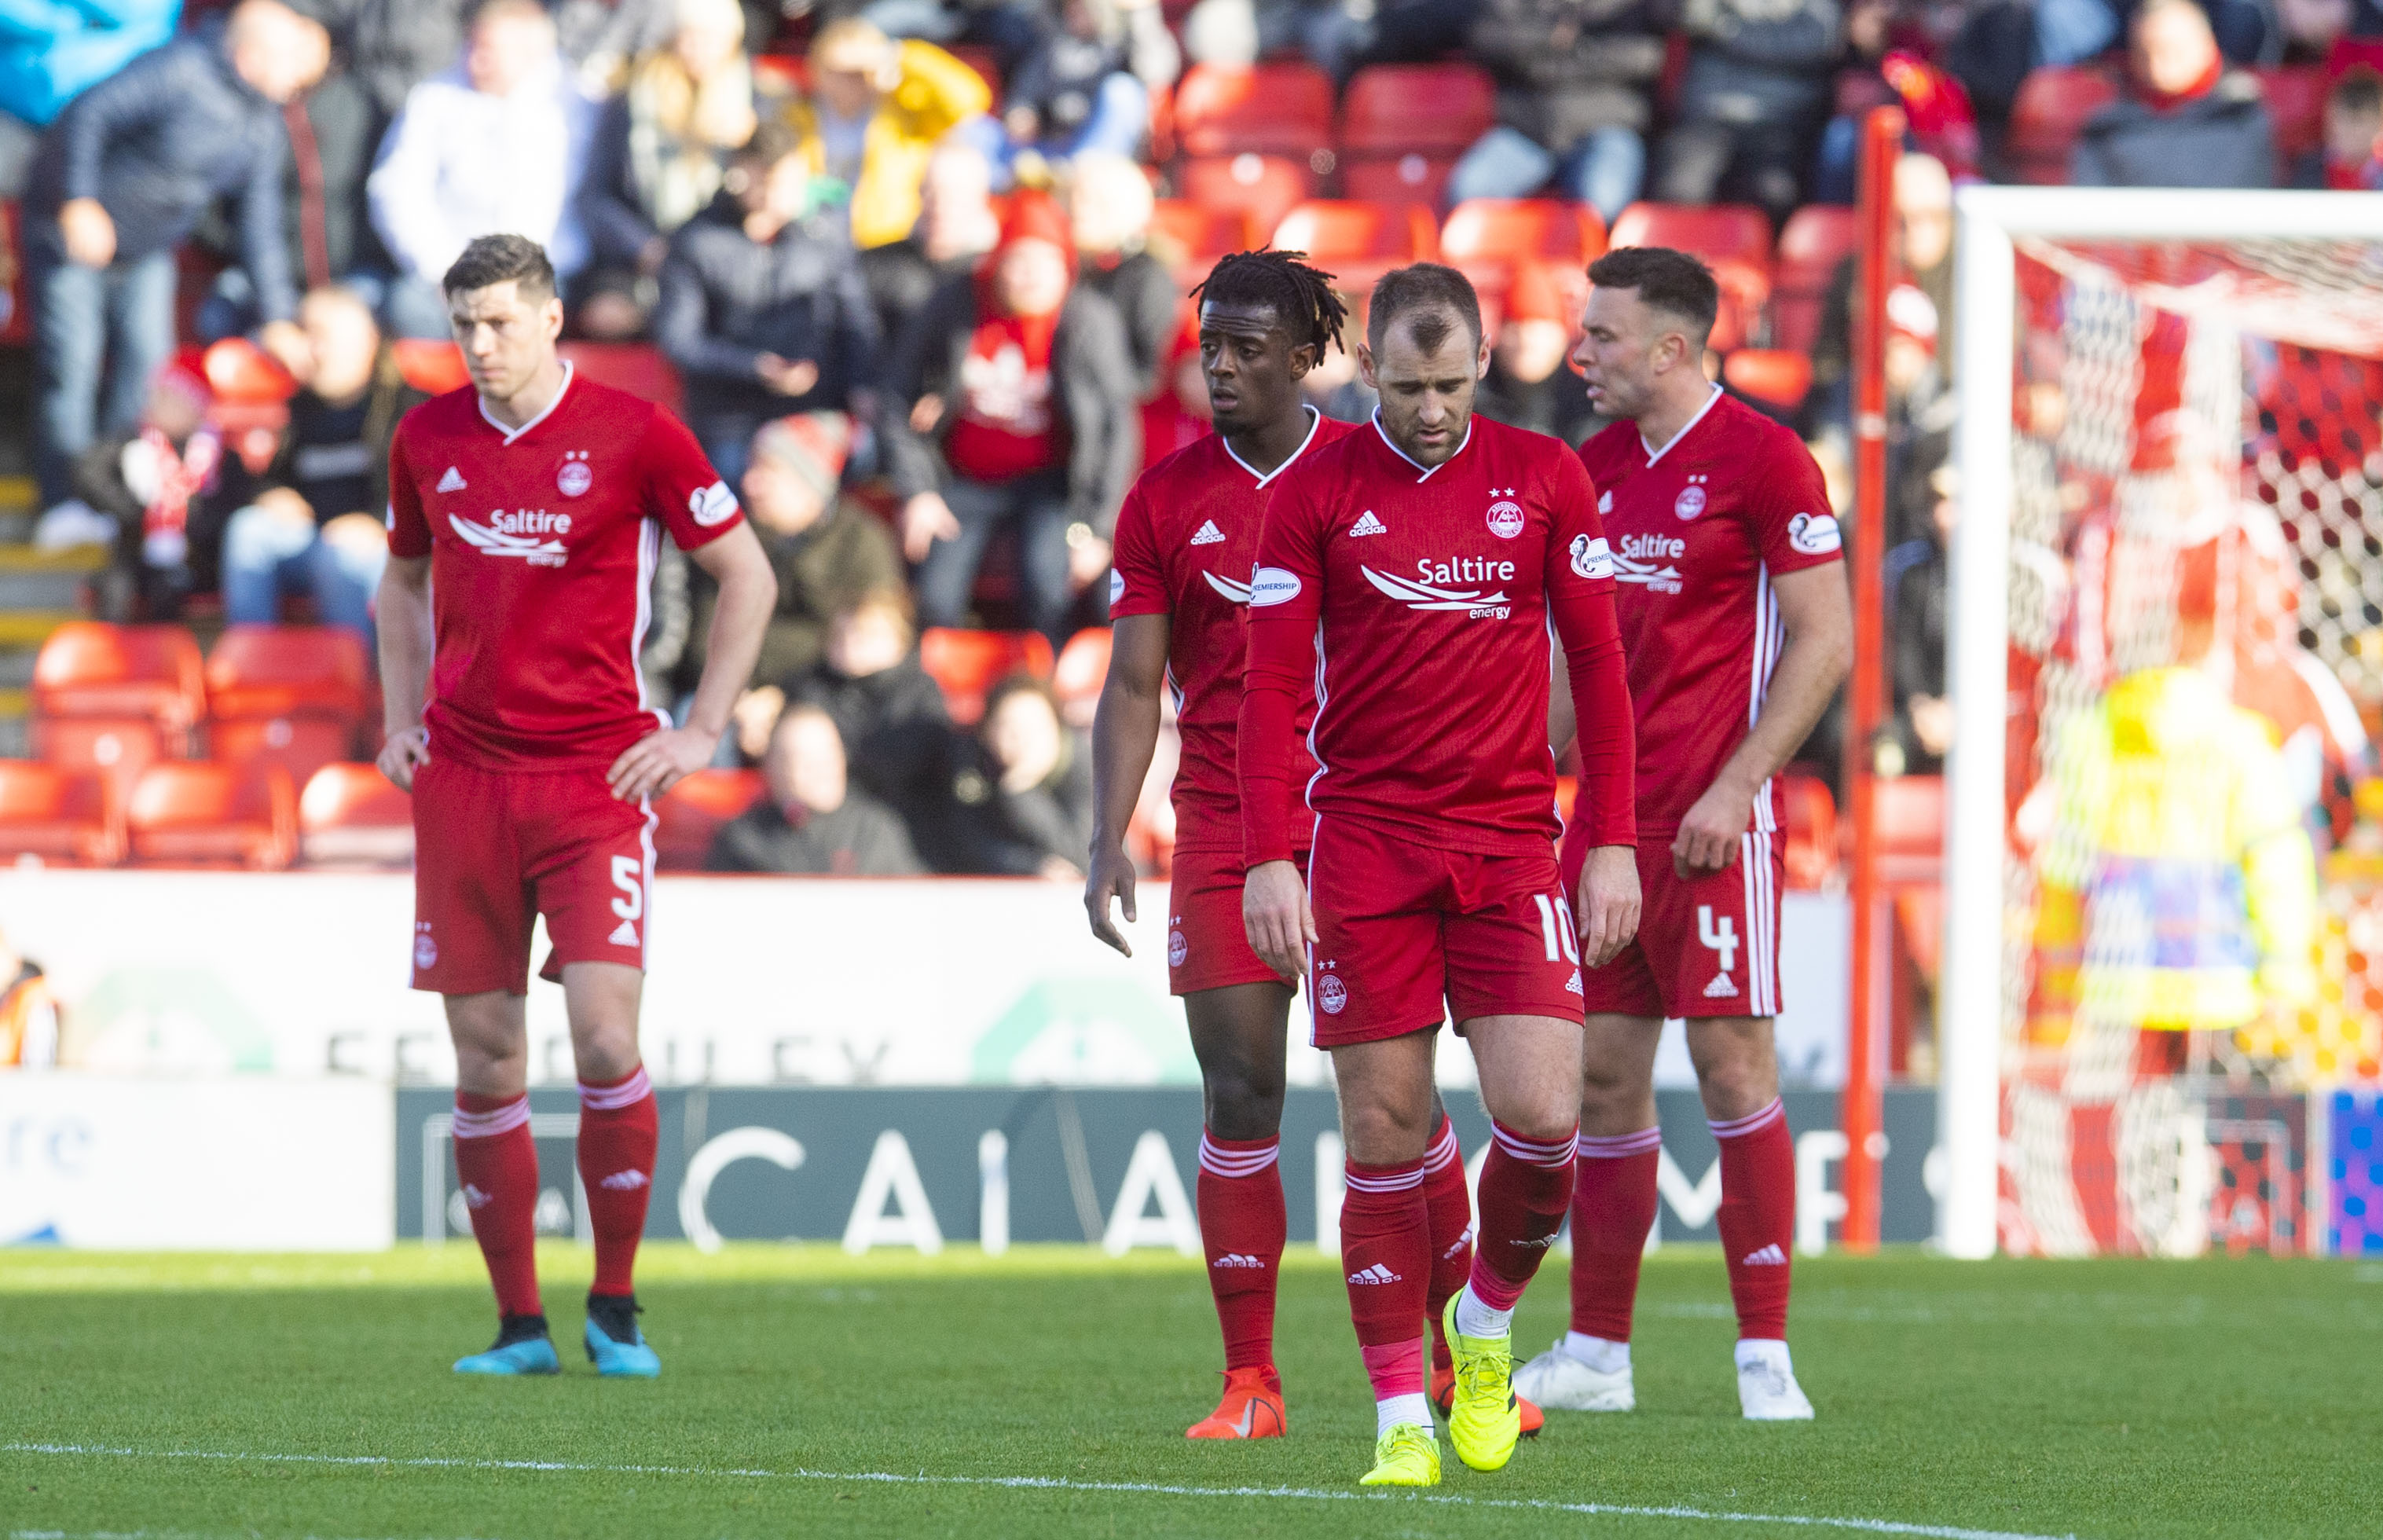 Aberdeen's players stand dejected after conceding the fourth goal